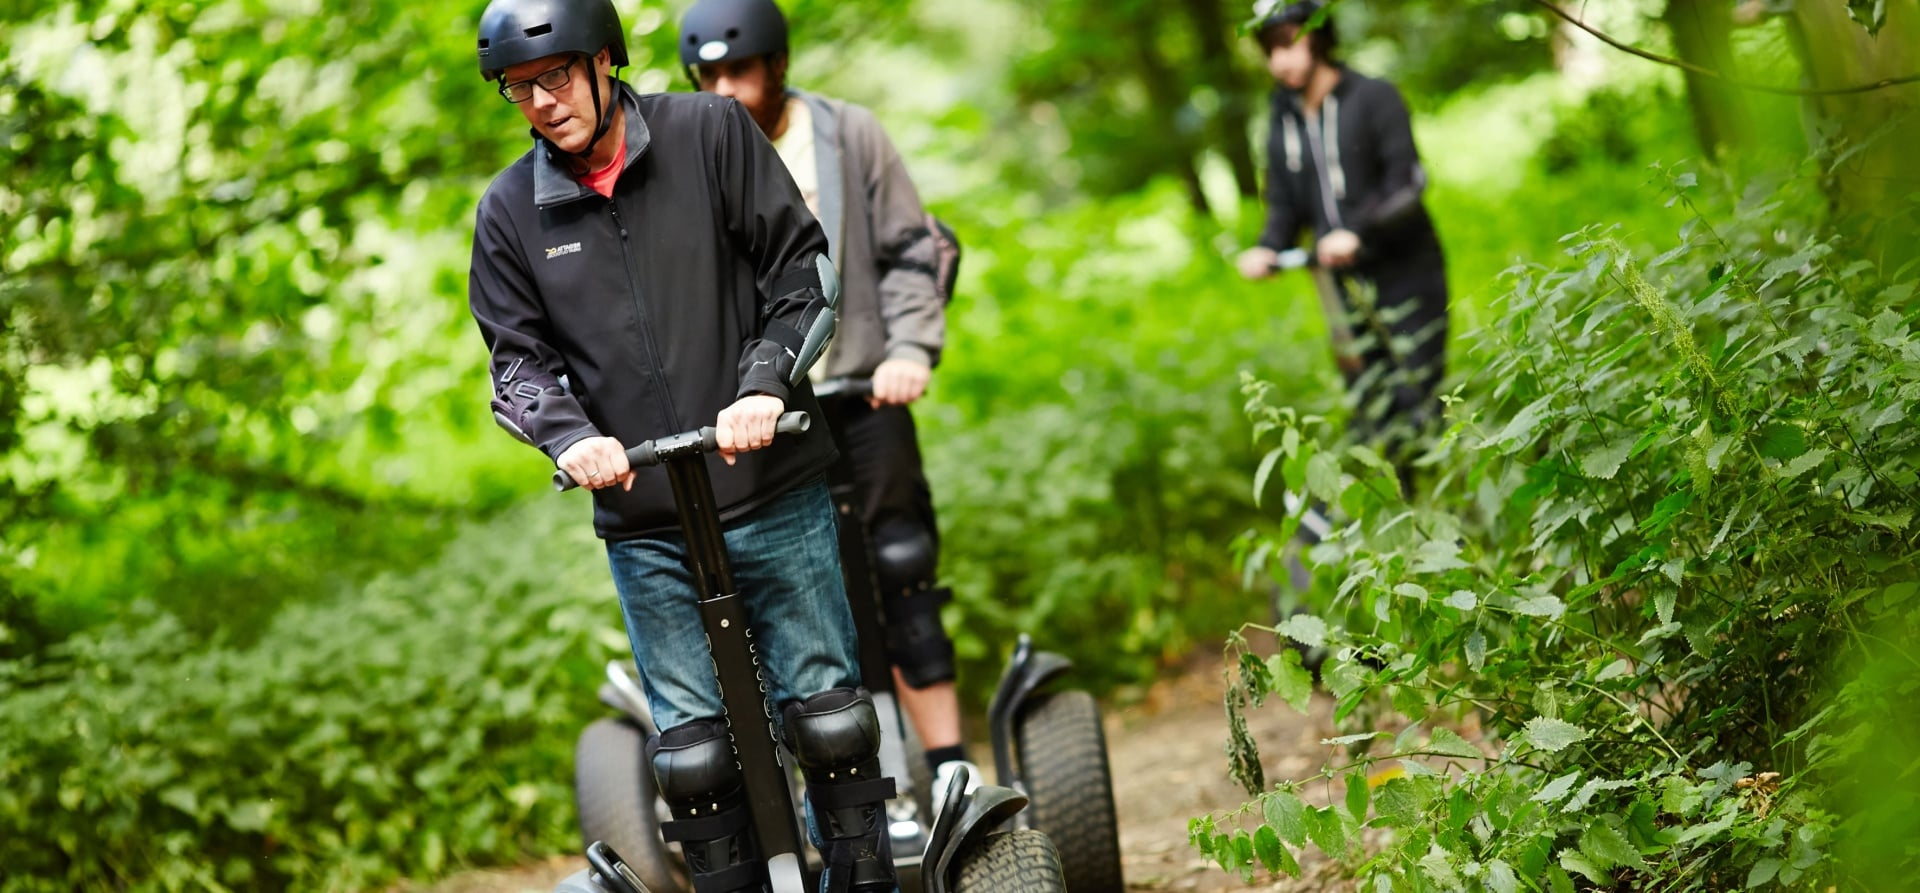 Weekday Segway Thrill For 2 Special Offer